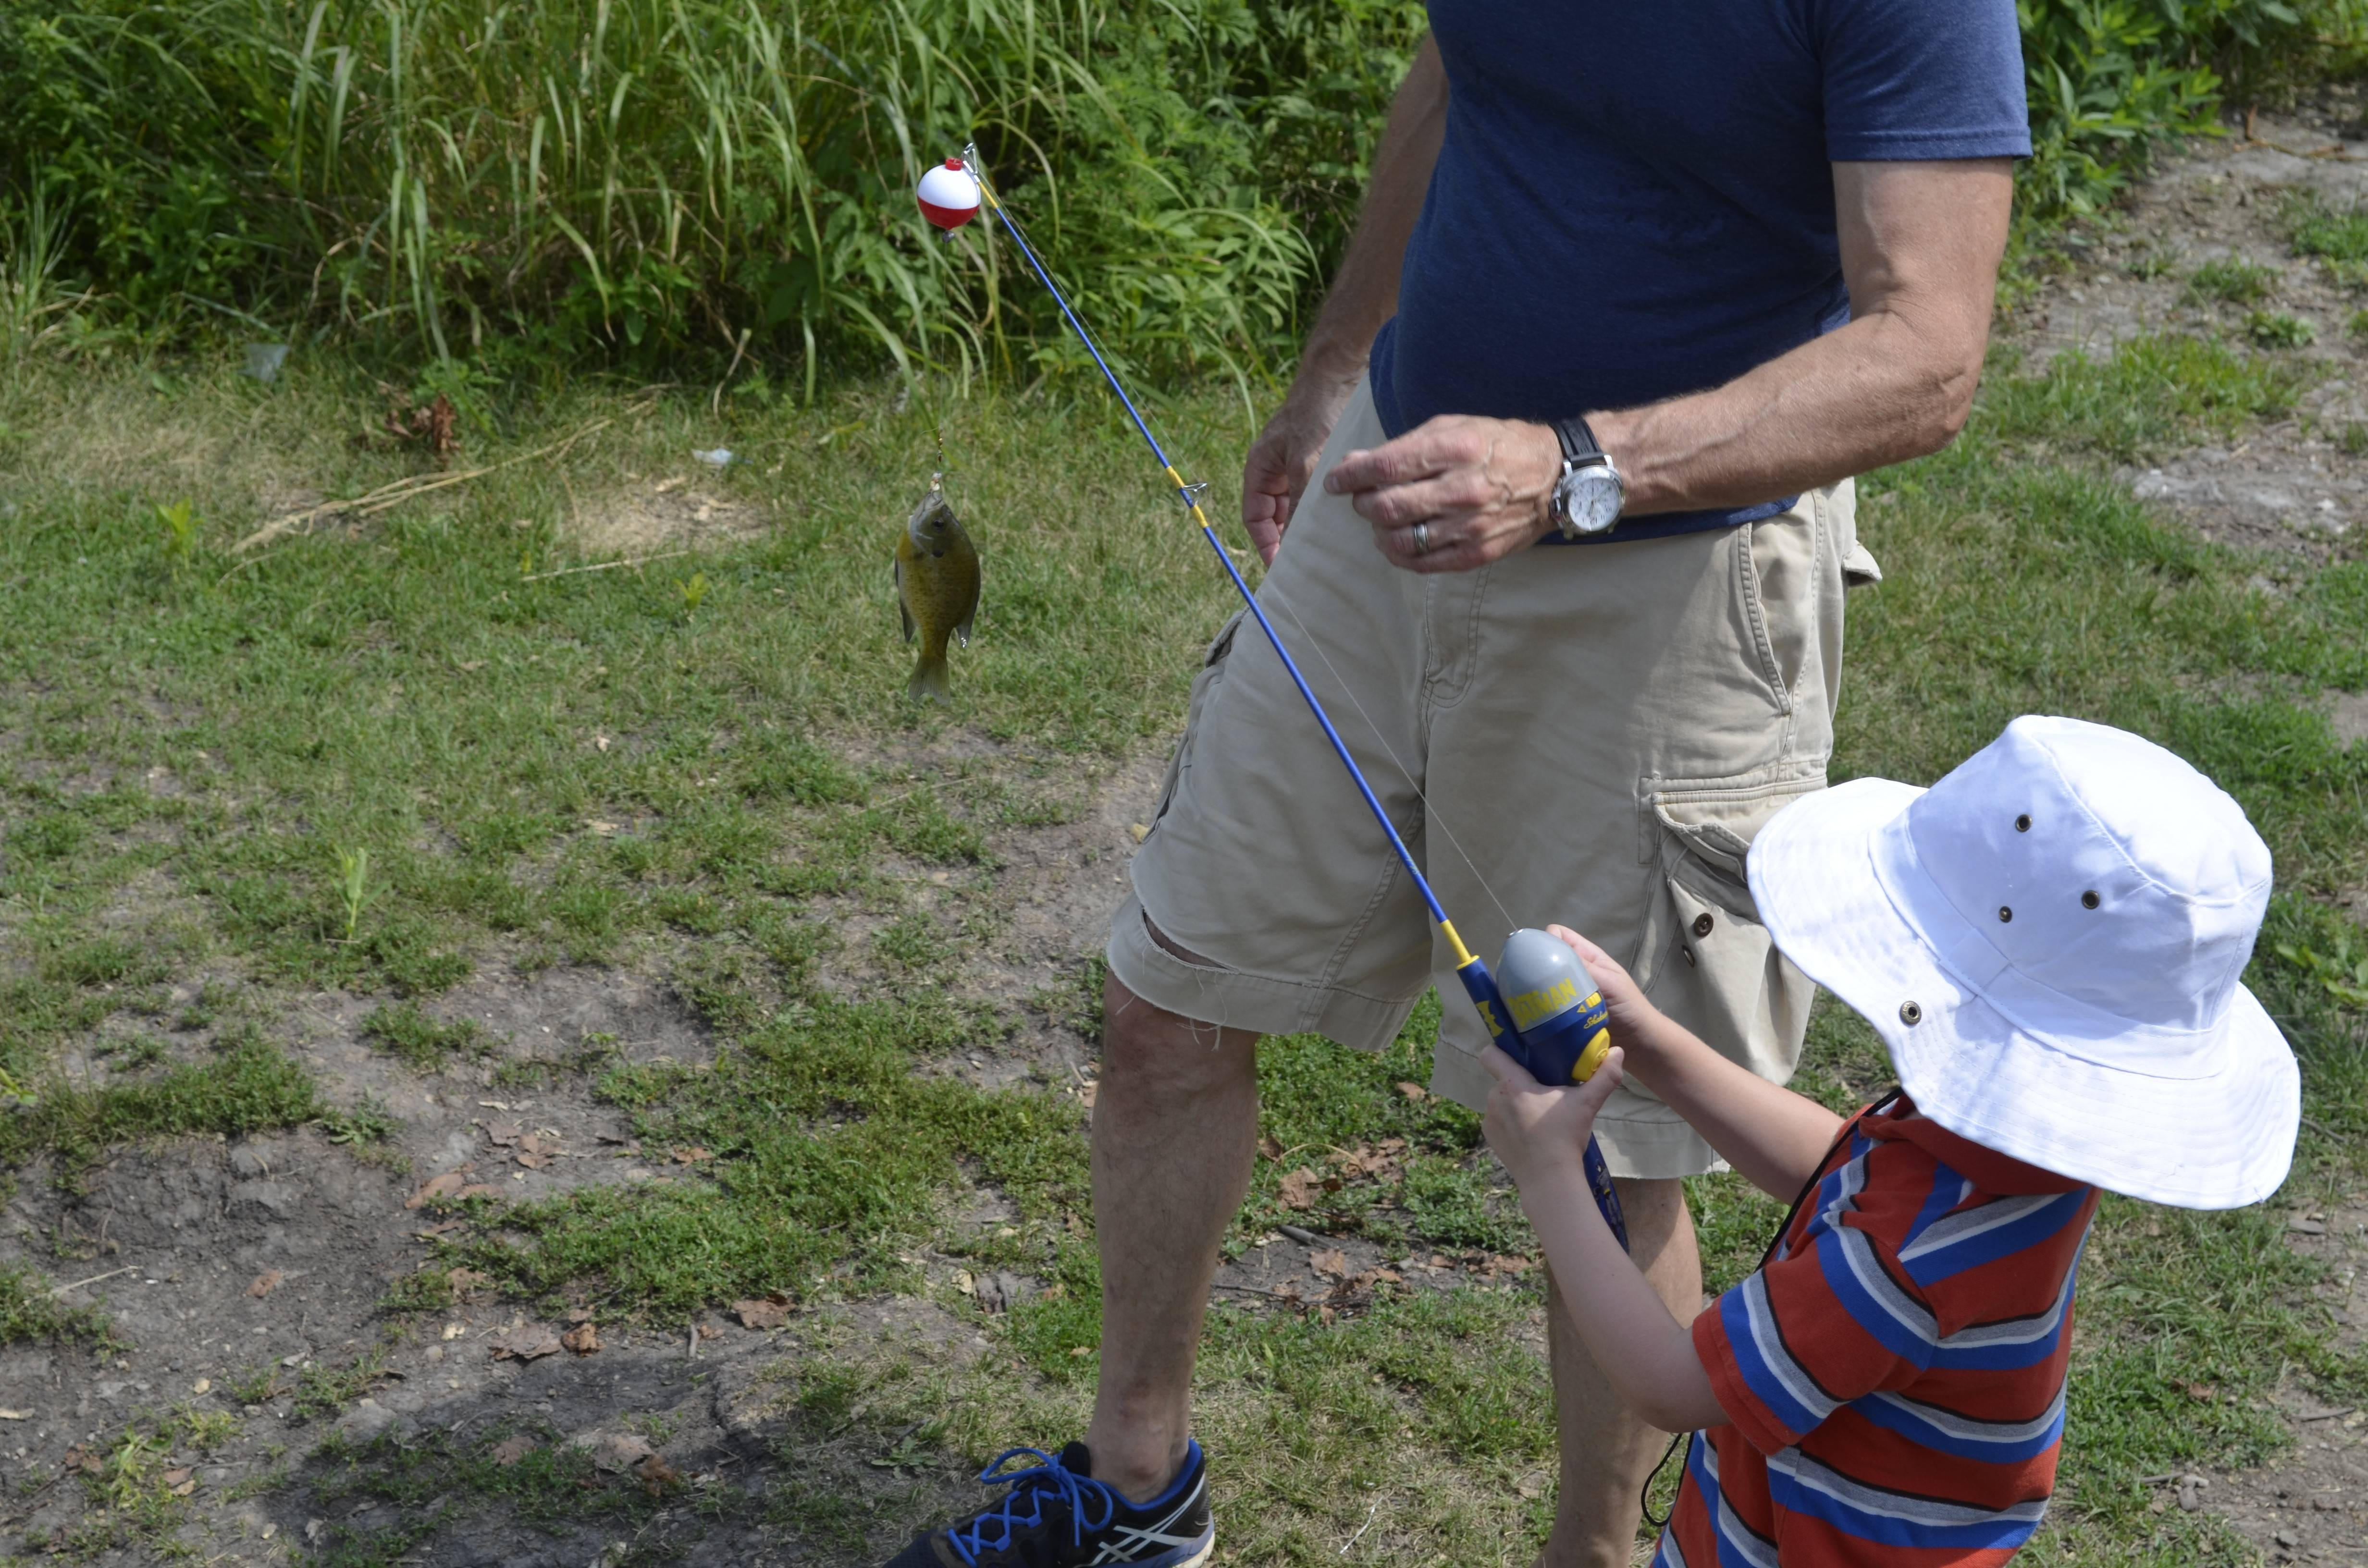 Two dads and two young boys fishing in Naperville's May Watts Park sparked all sorts of fond memories for our Stephanie Penick.